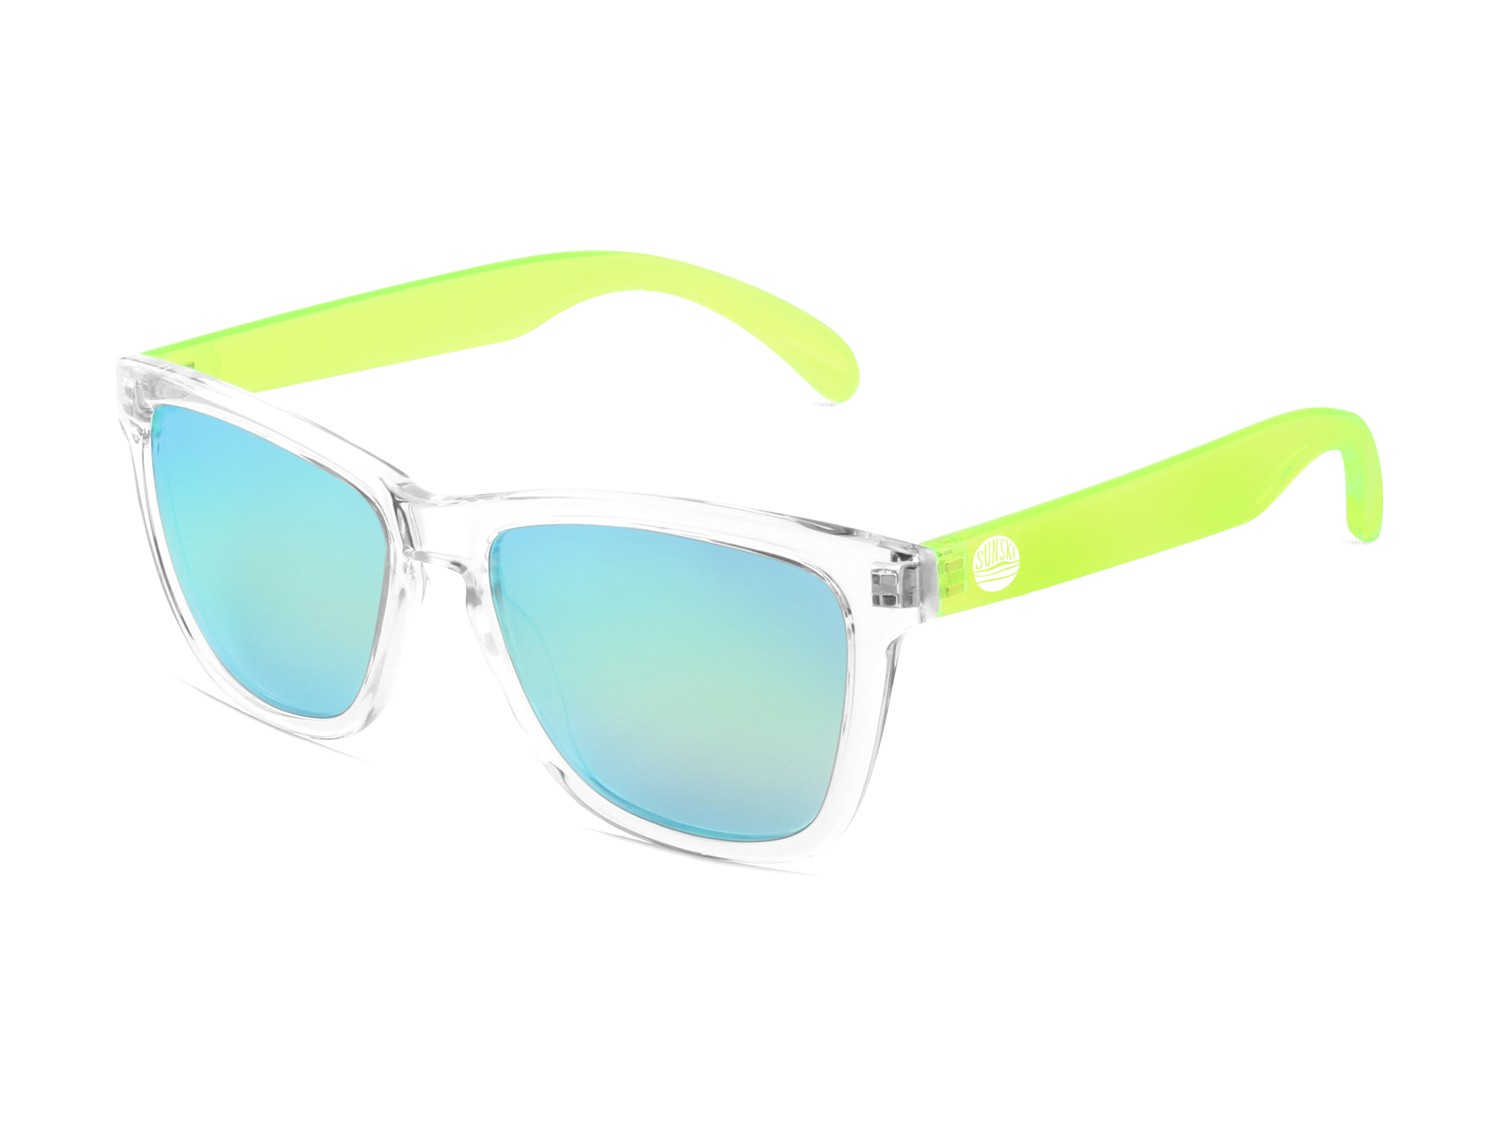 9cf35b3324 Sunski Original - Lime - Sunskis by Farai